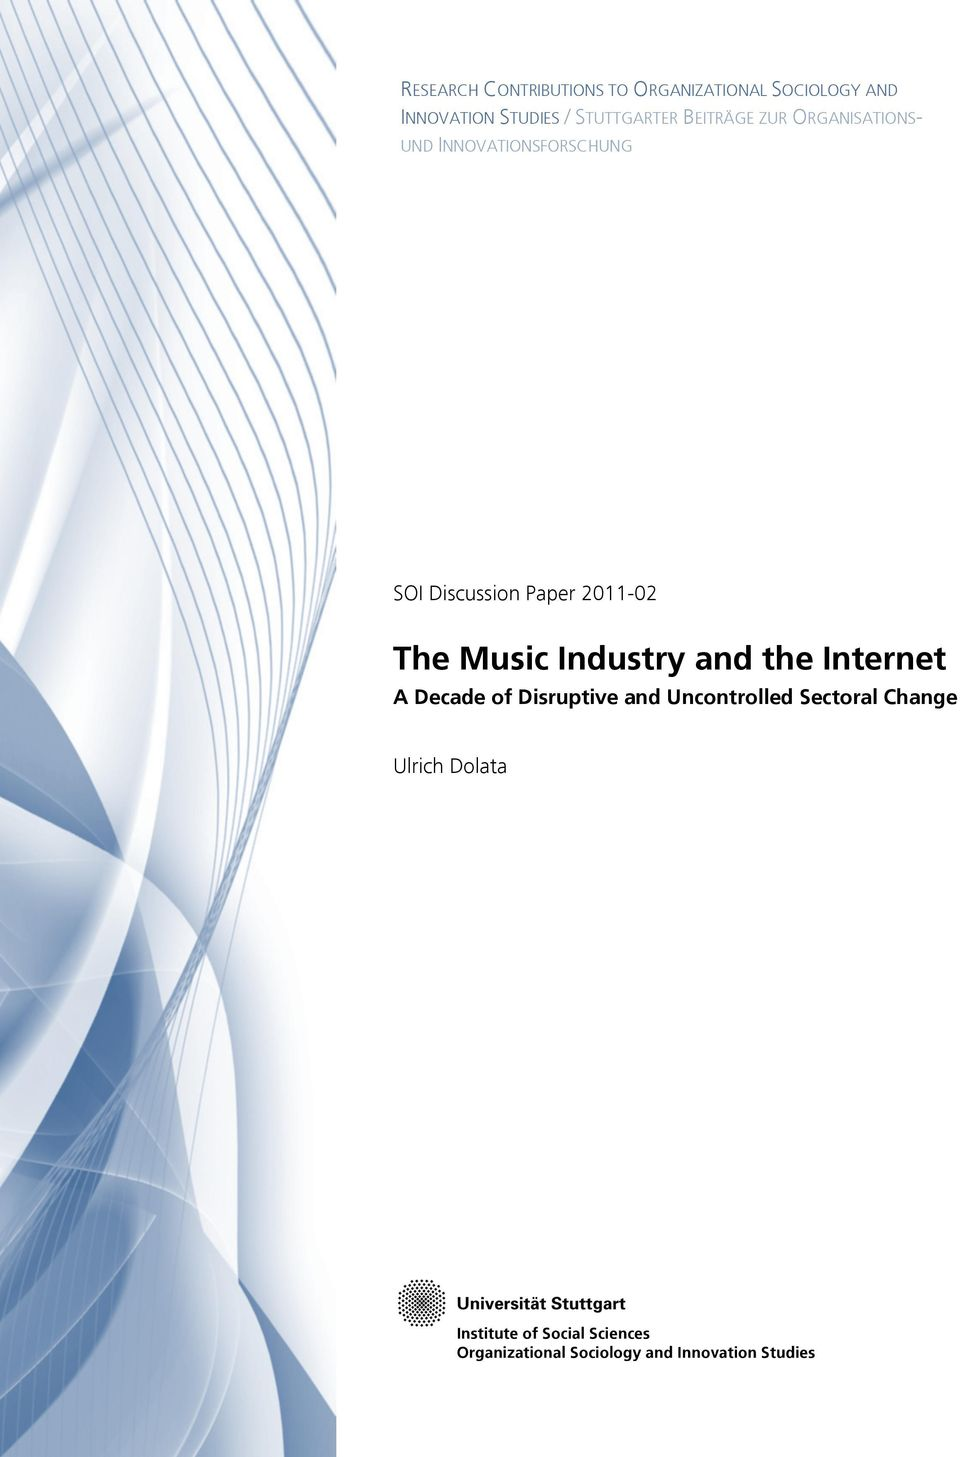 02 The Music Industry and the Internet A Decade of Disruptive and Uncontrolled Sectoral